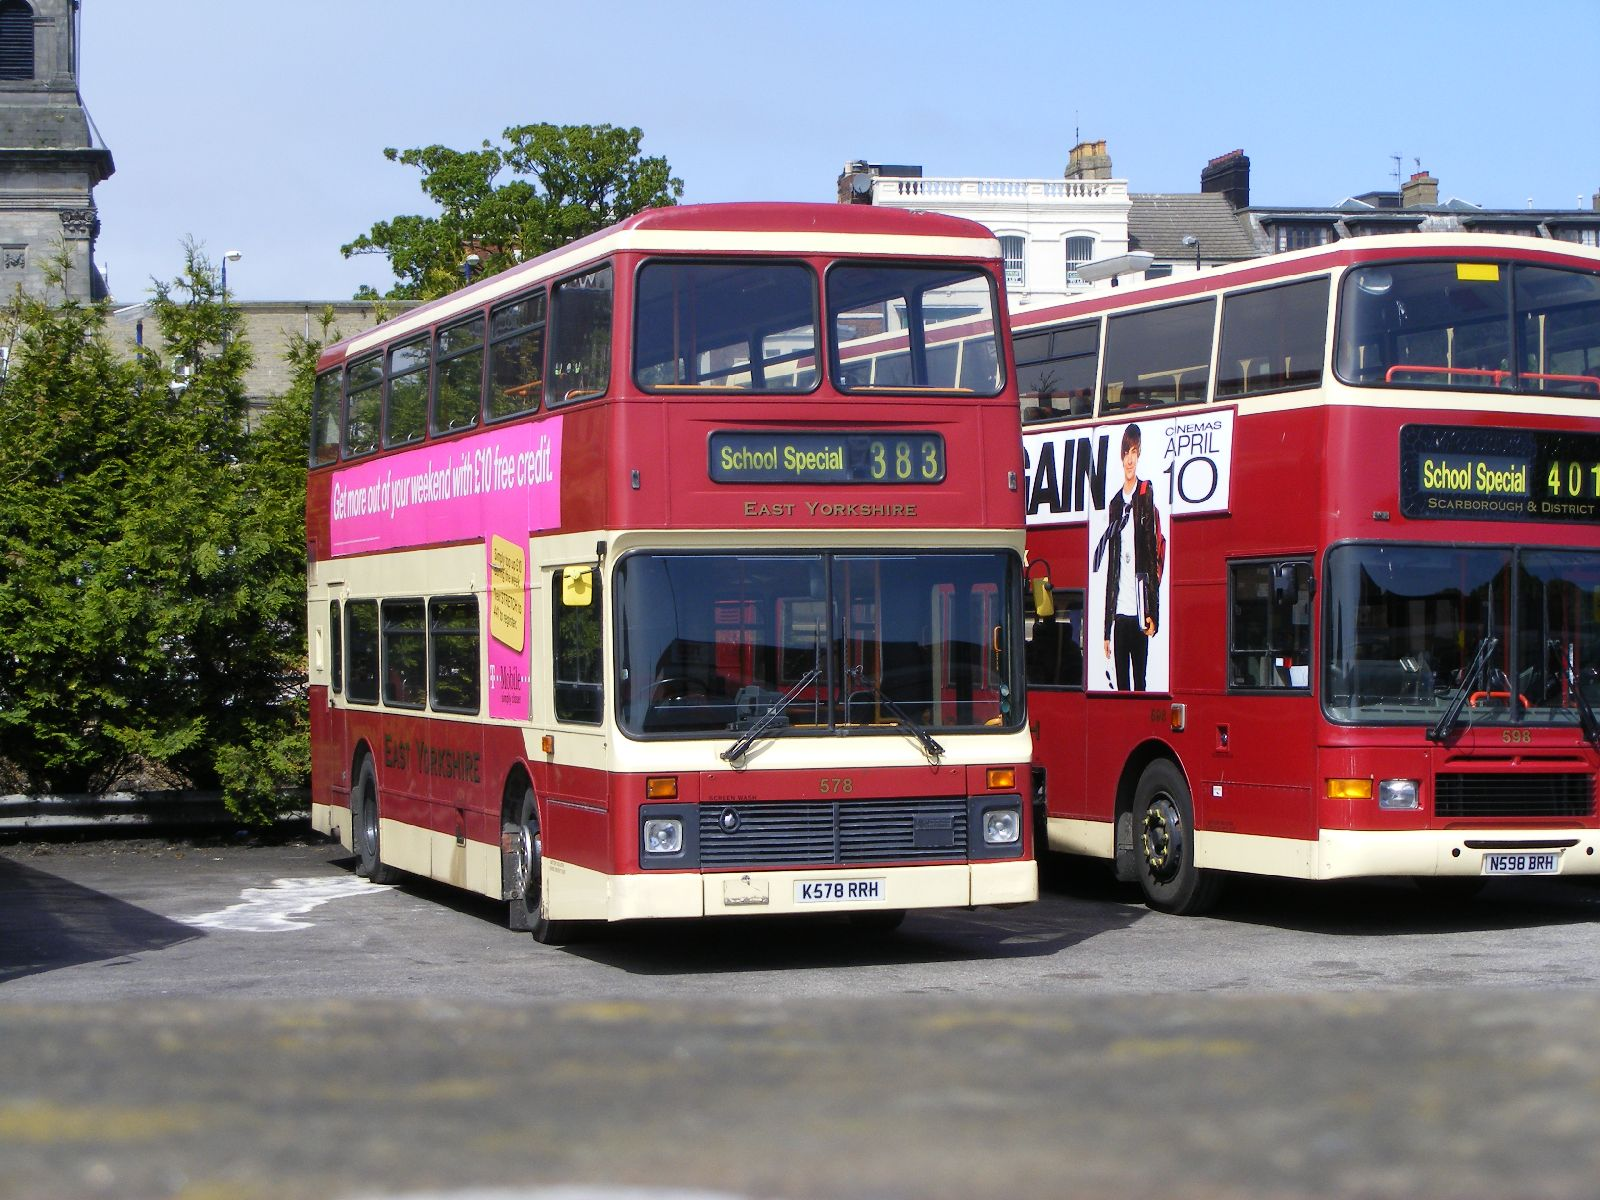 File:East Yorkshire bus 578 (K578 BRH), 12 May 2009 jpg